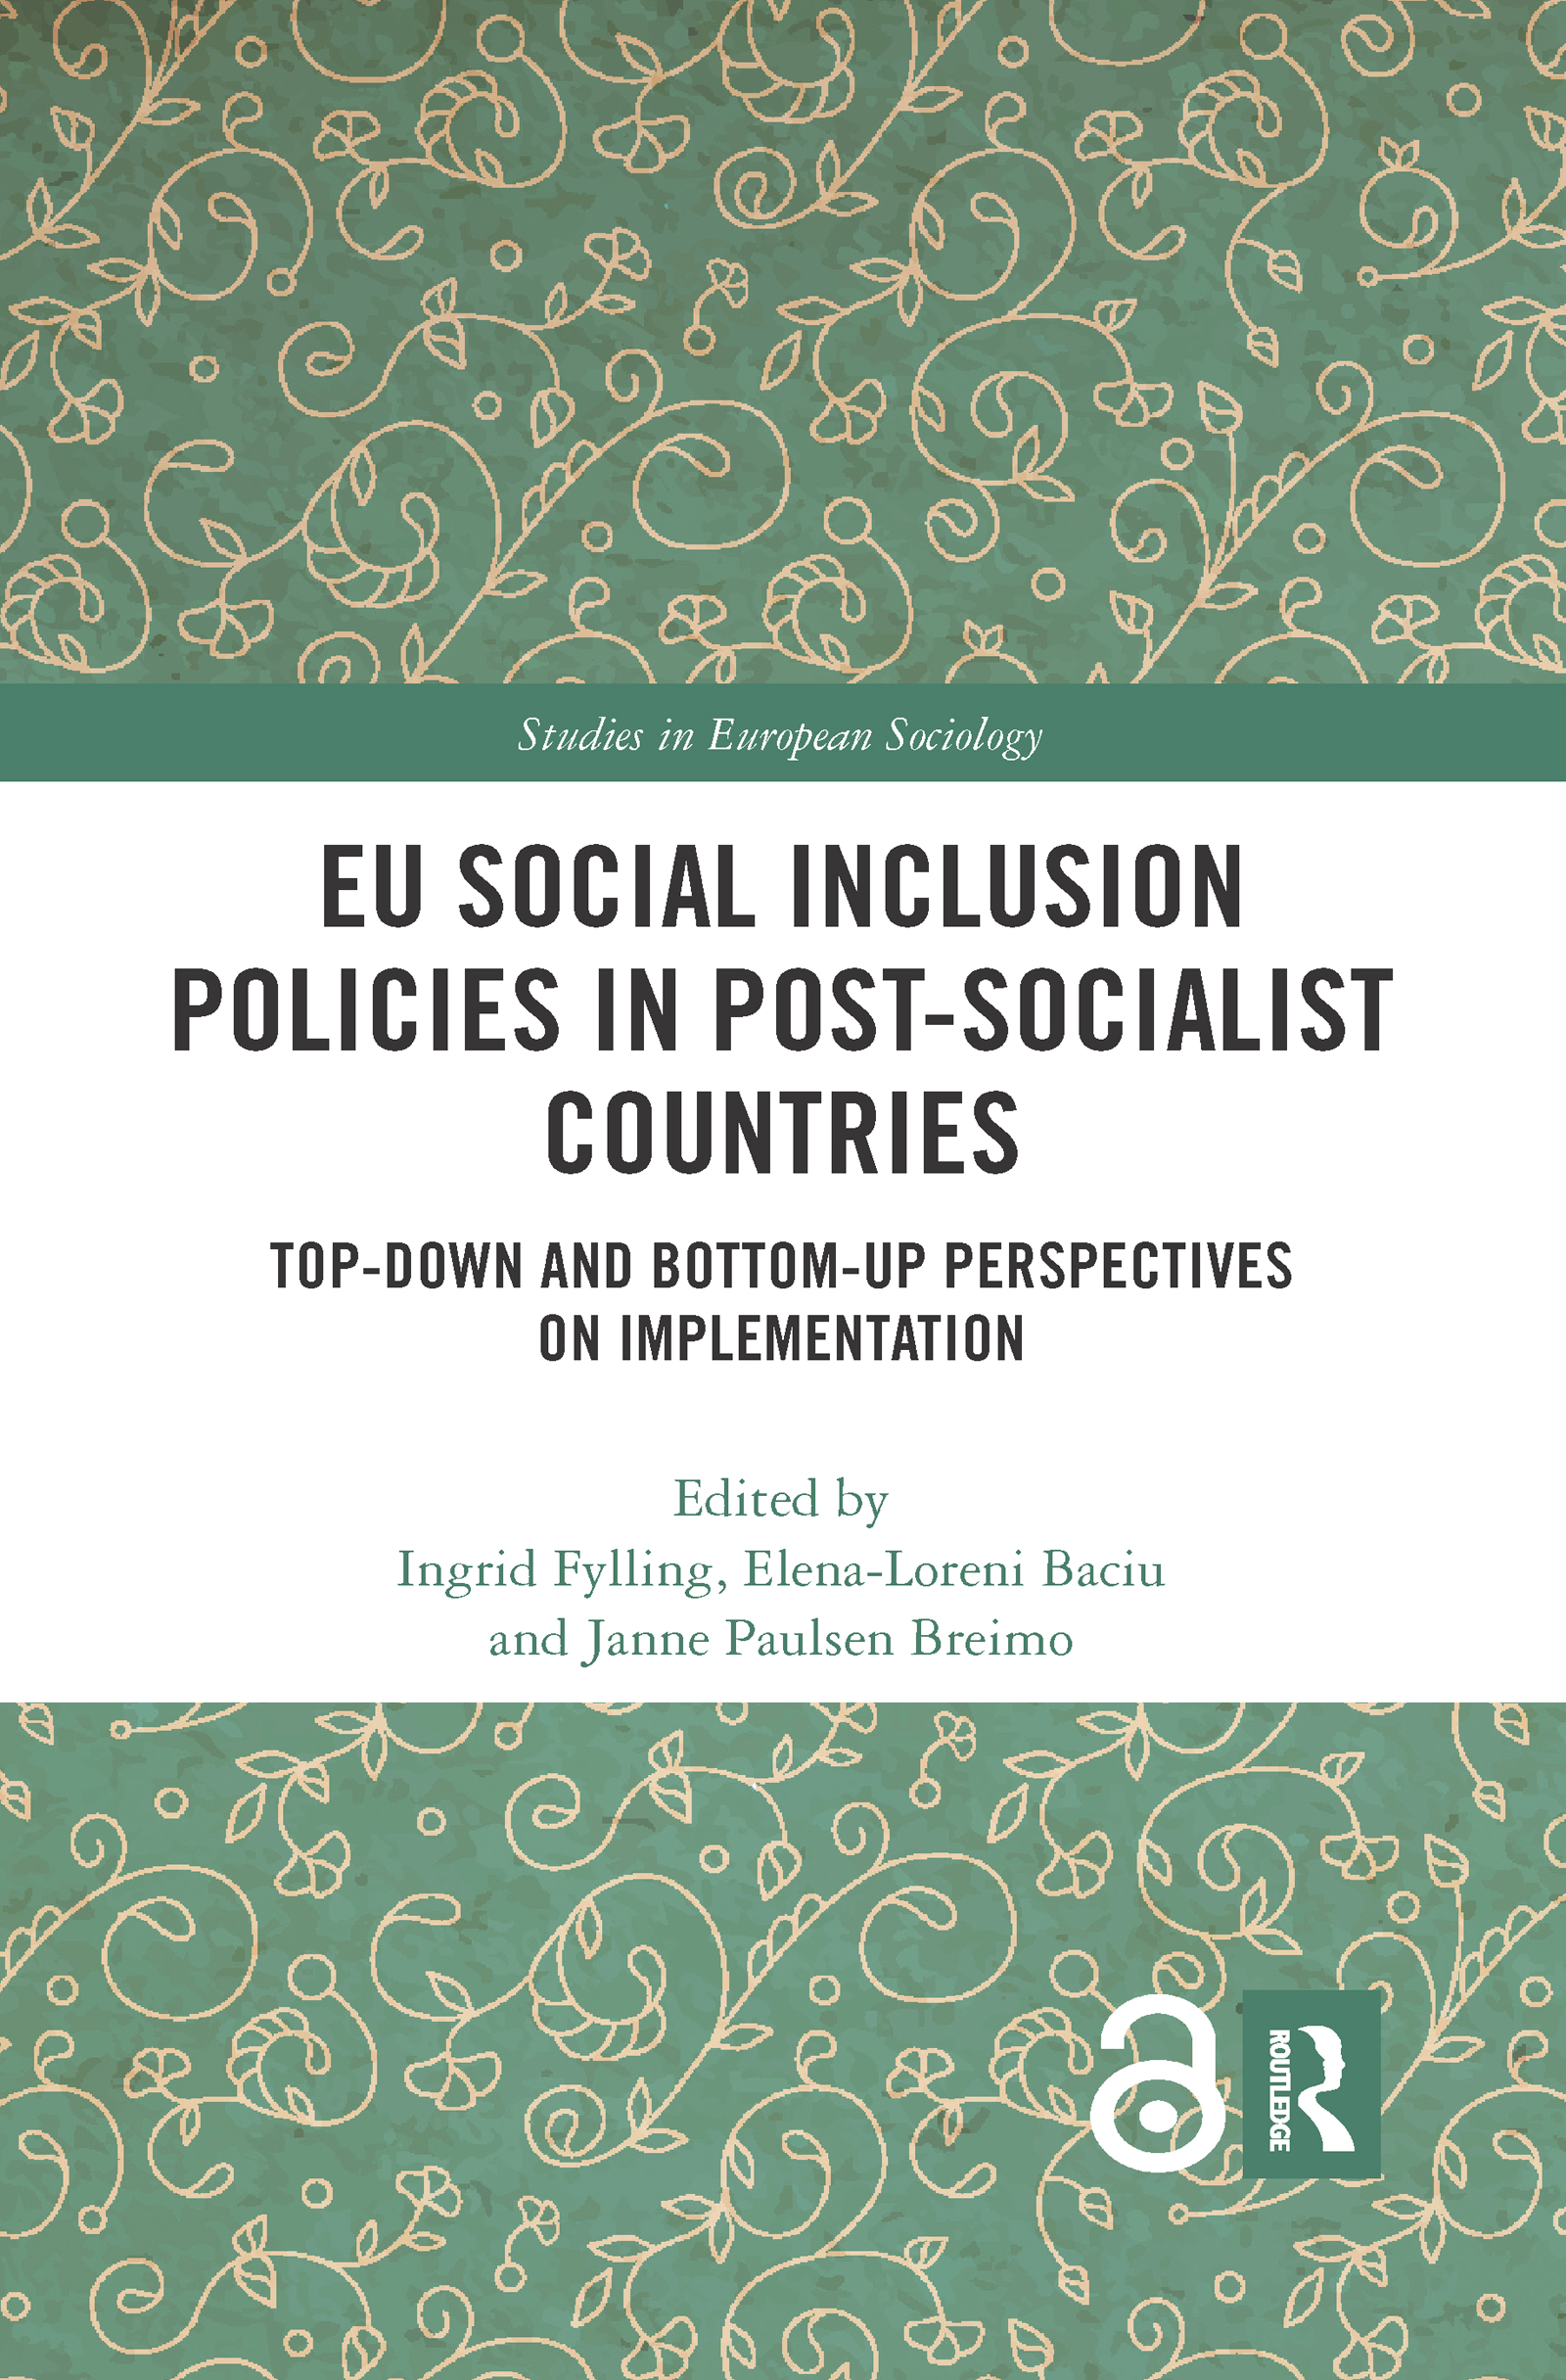 EU Social Inclusion Policies in Post-Socialist Countries